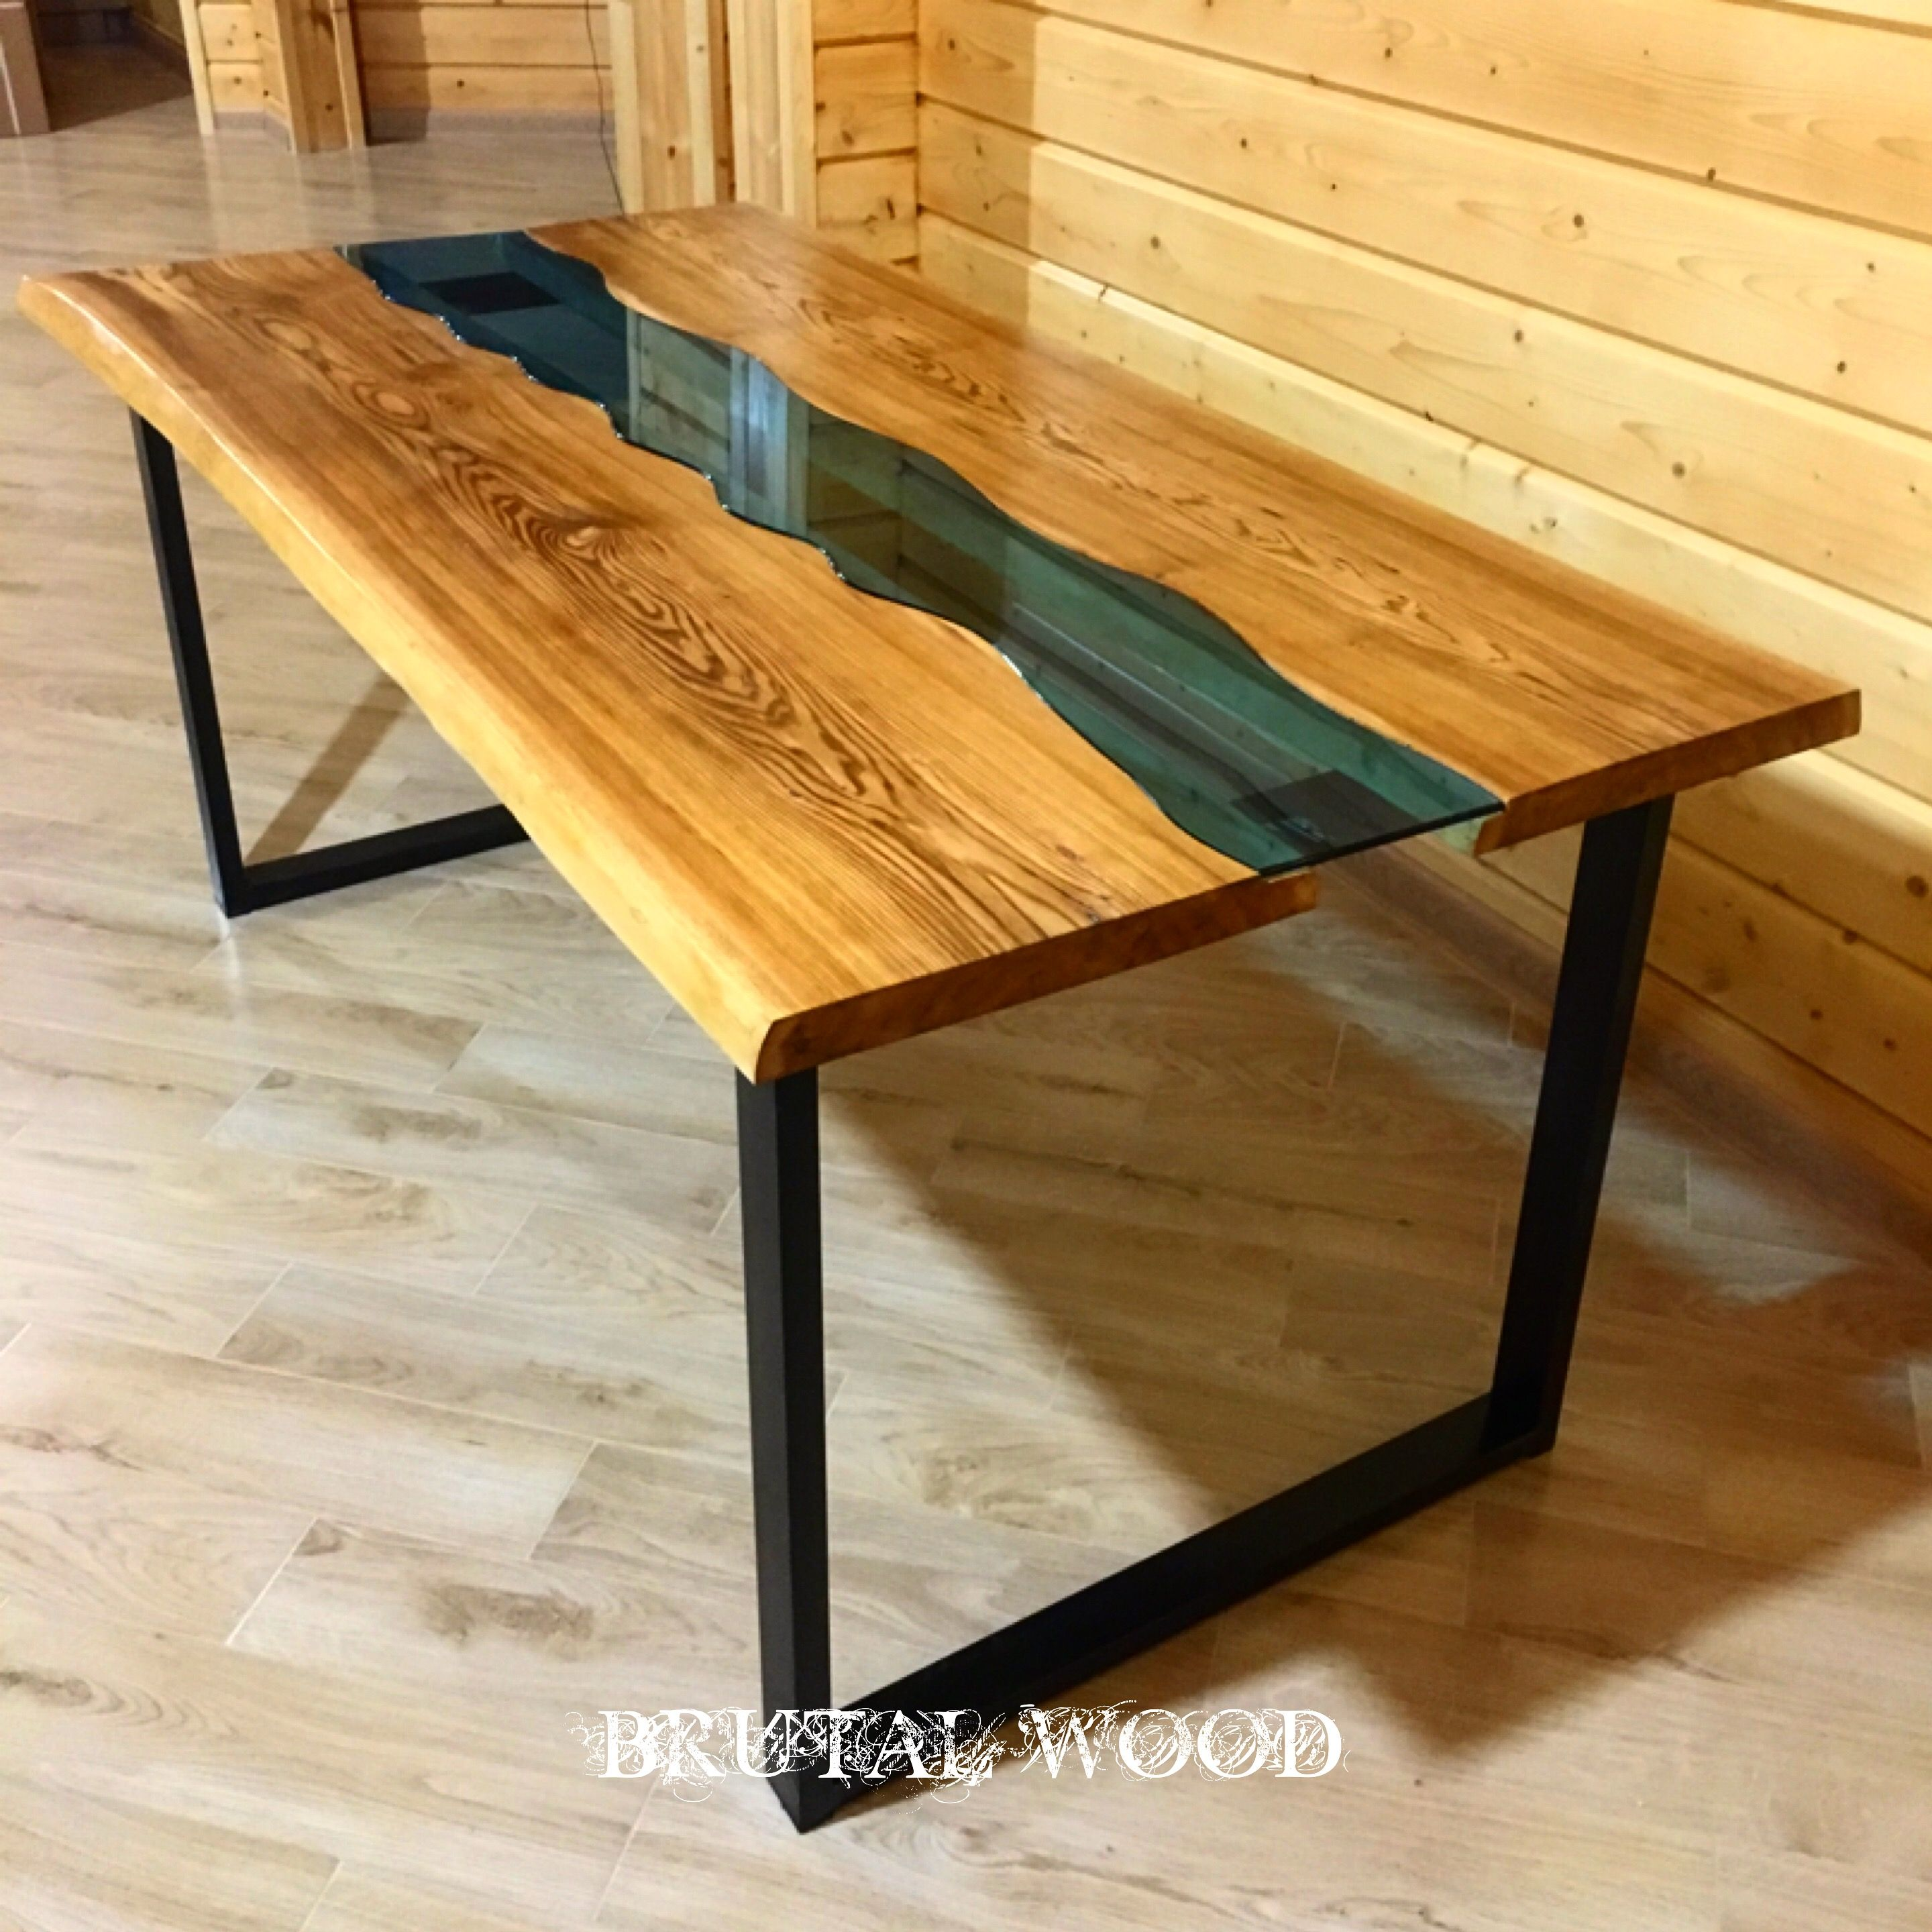 Pin von Brutal-wood auf Table river table | Pinterest